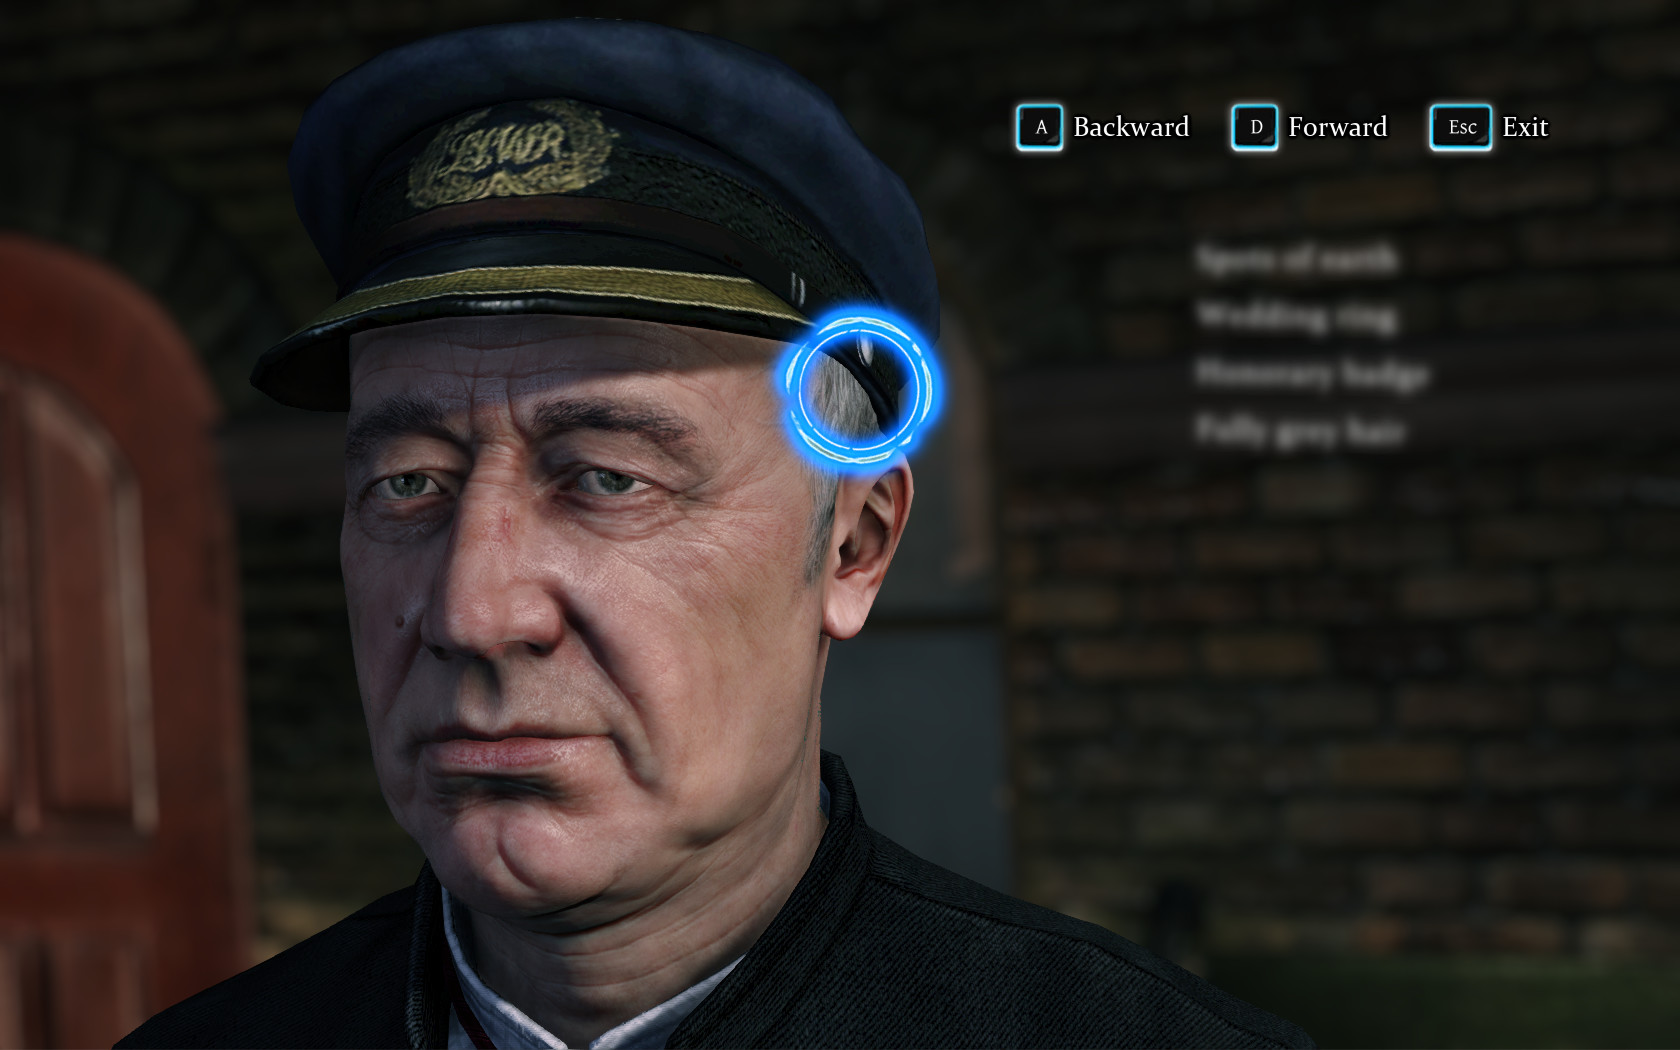 The screen shows the face of a late middle aged man in a uniform cap. The cursor is ready to focus over different parts of his face, with potential clues yet to be discovered obscured on a list on the right side of the screen.